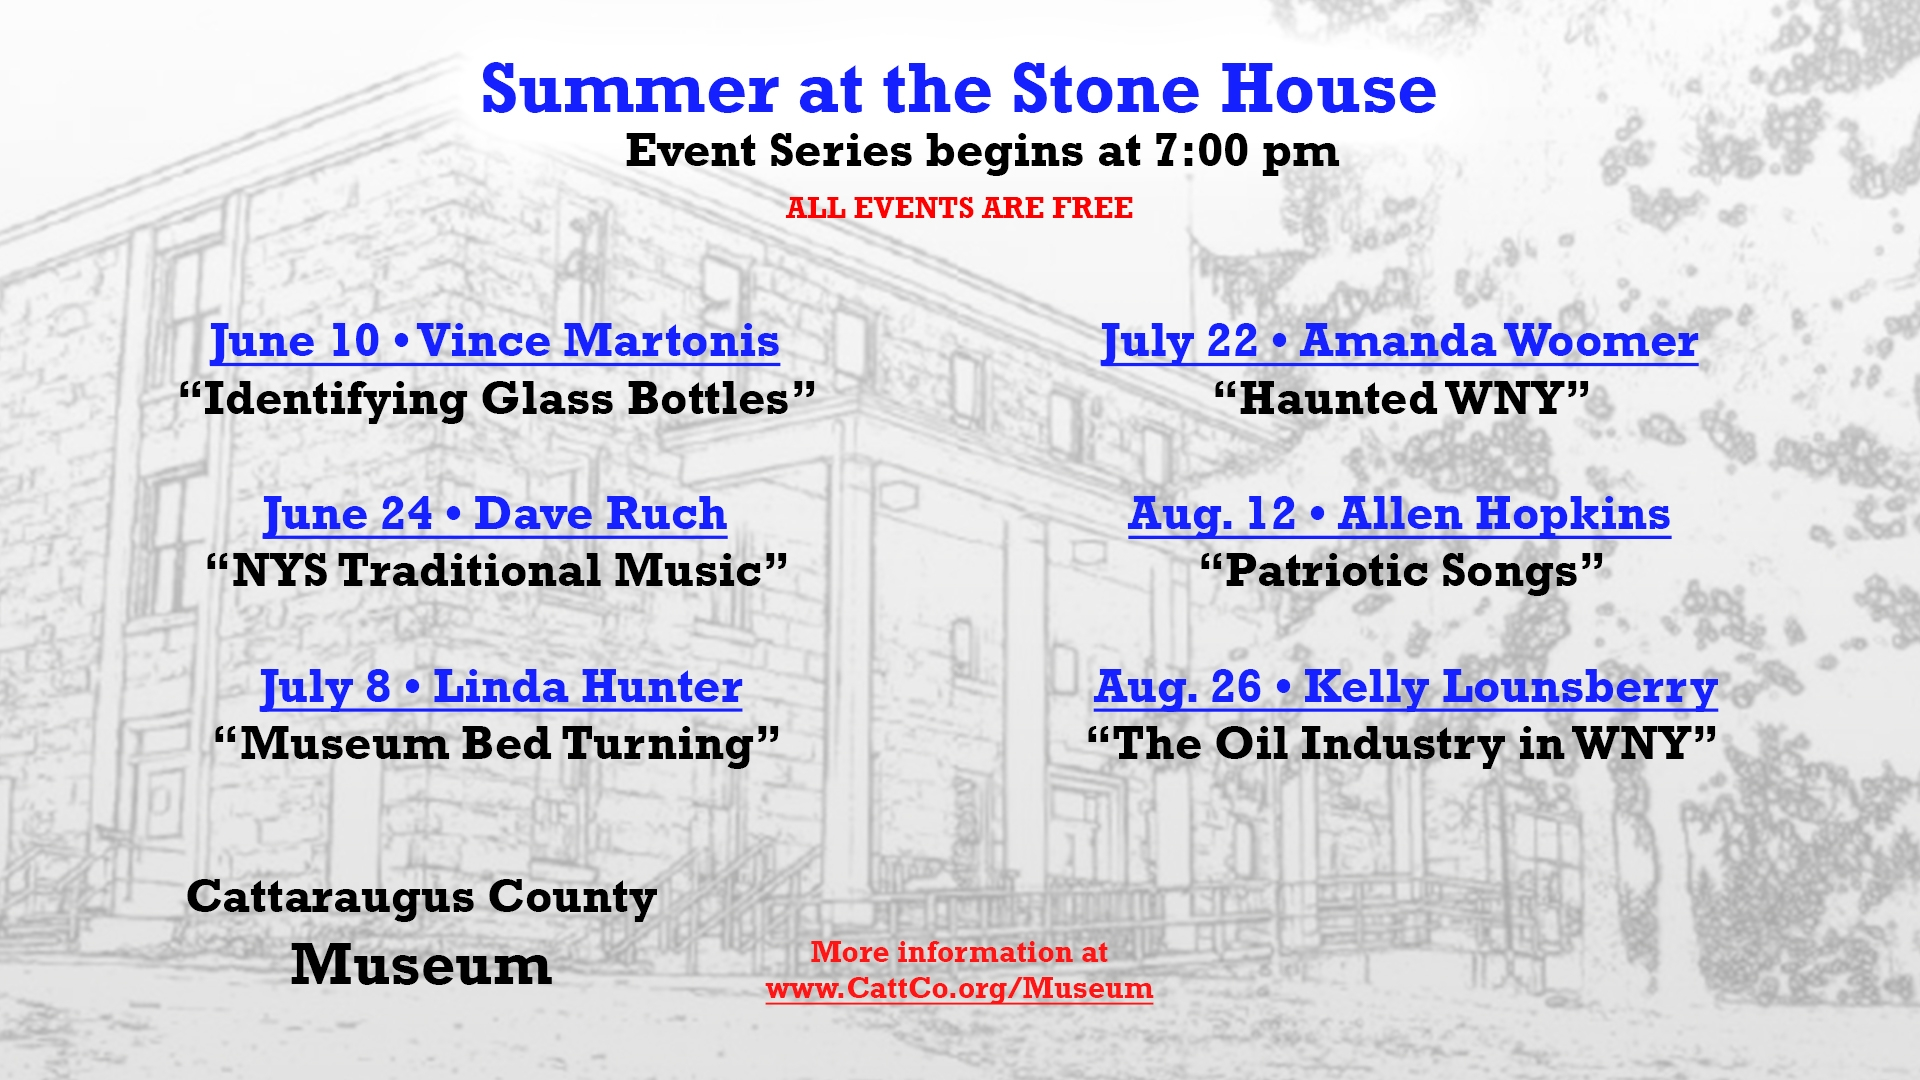 Summer at the Stone House